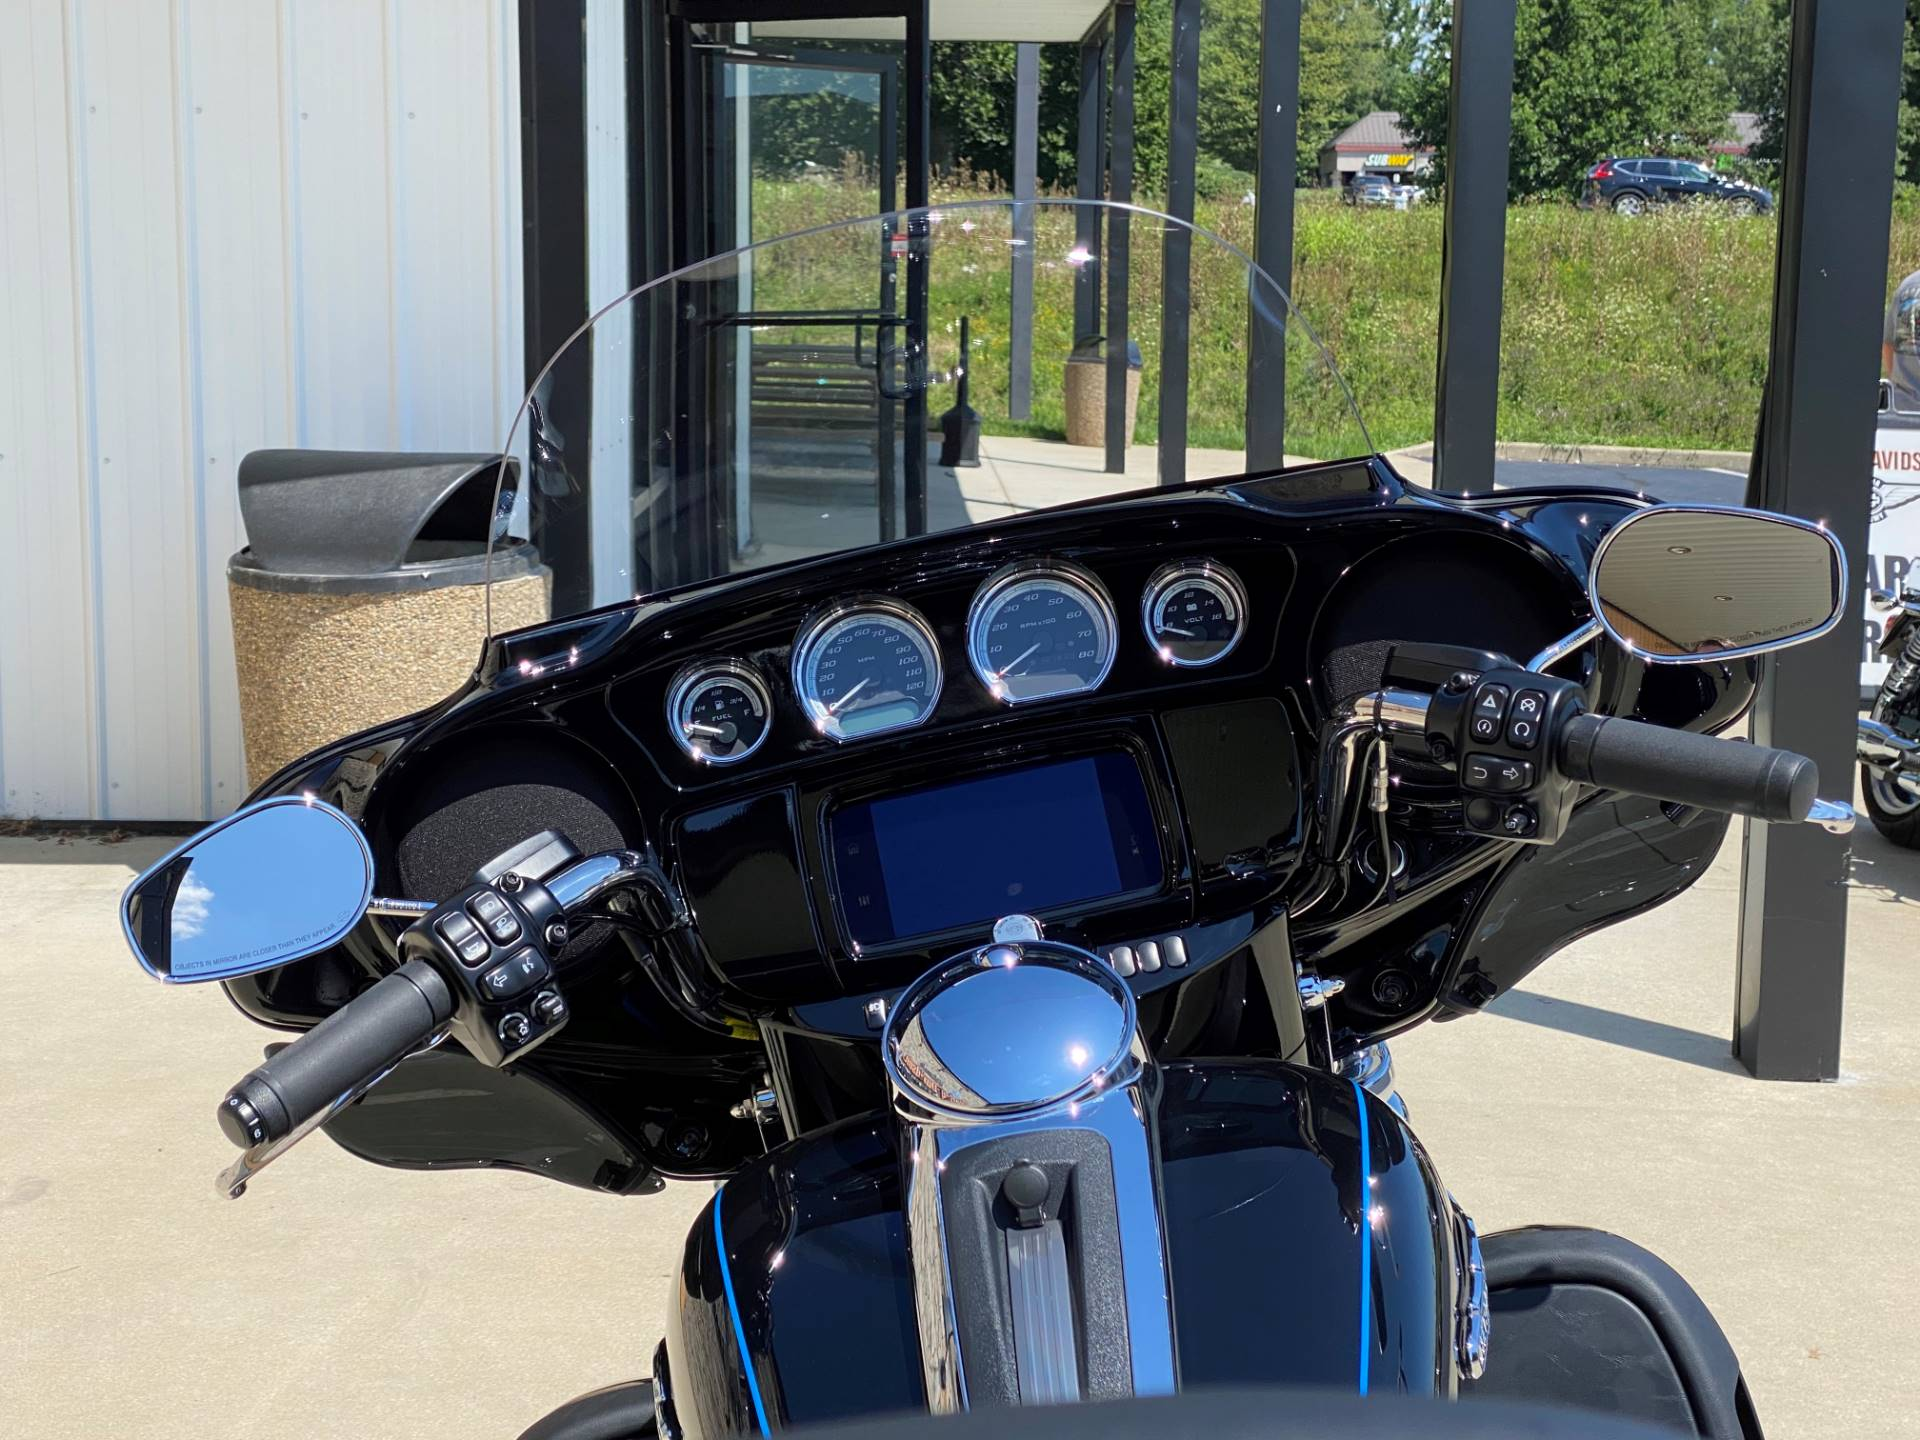 2020 Harley-Davidson Limited in Bloomington, Indiana - Photo 6